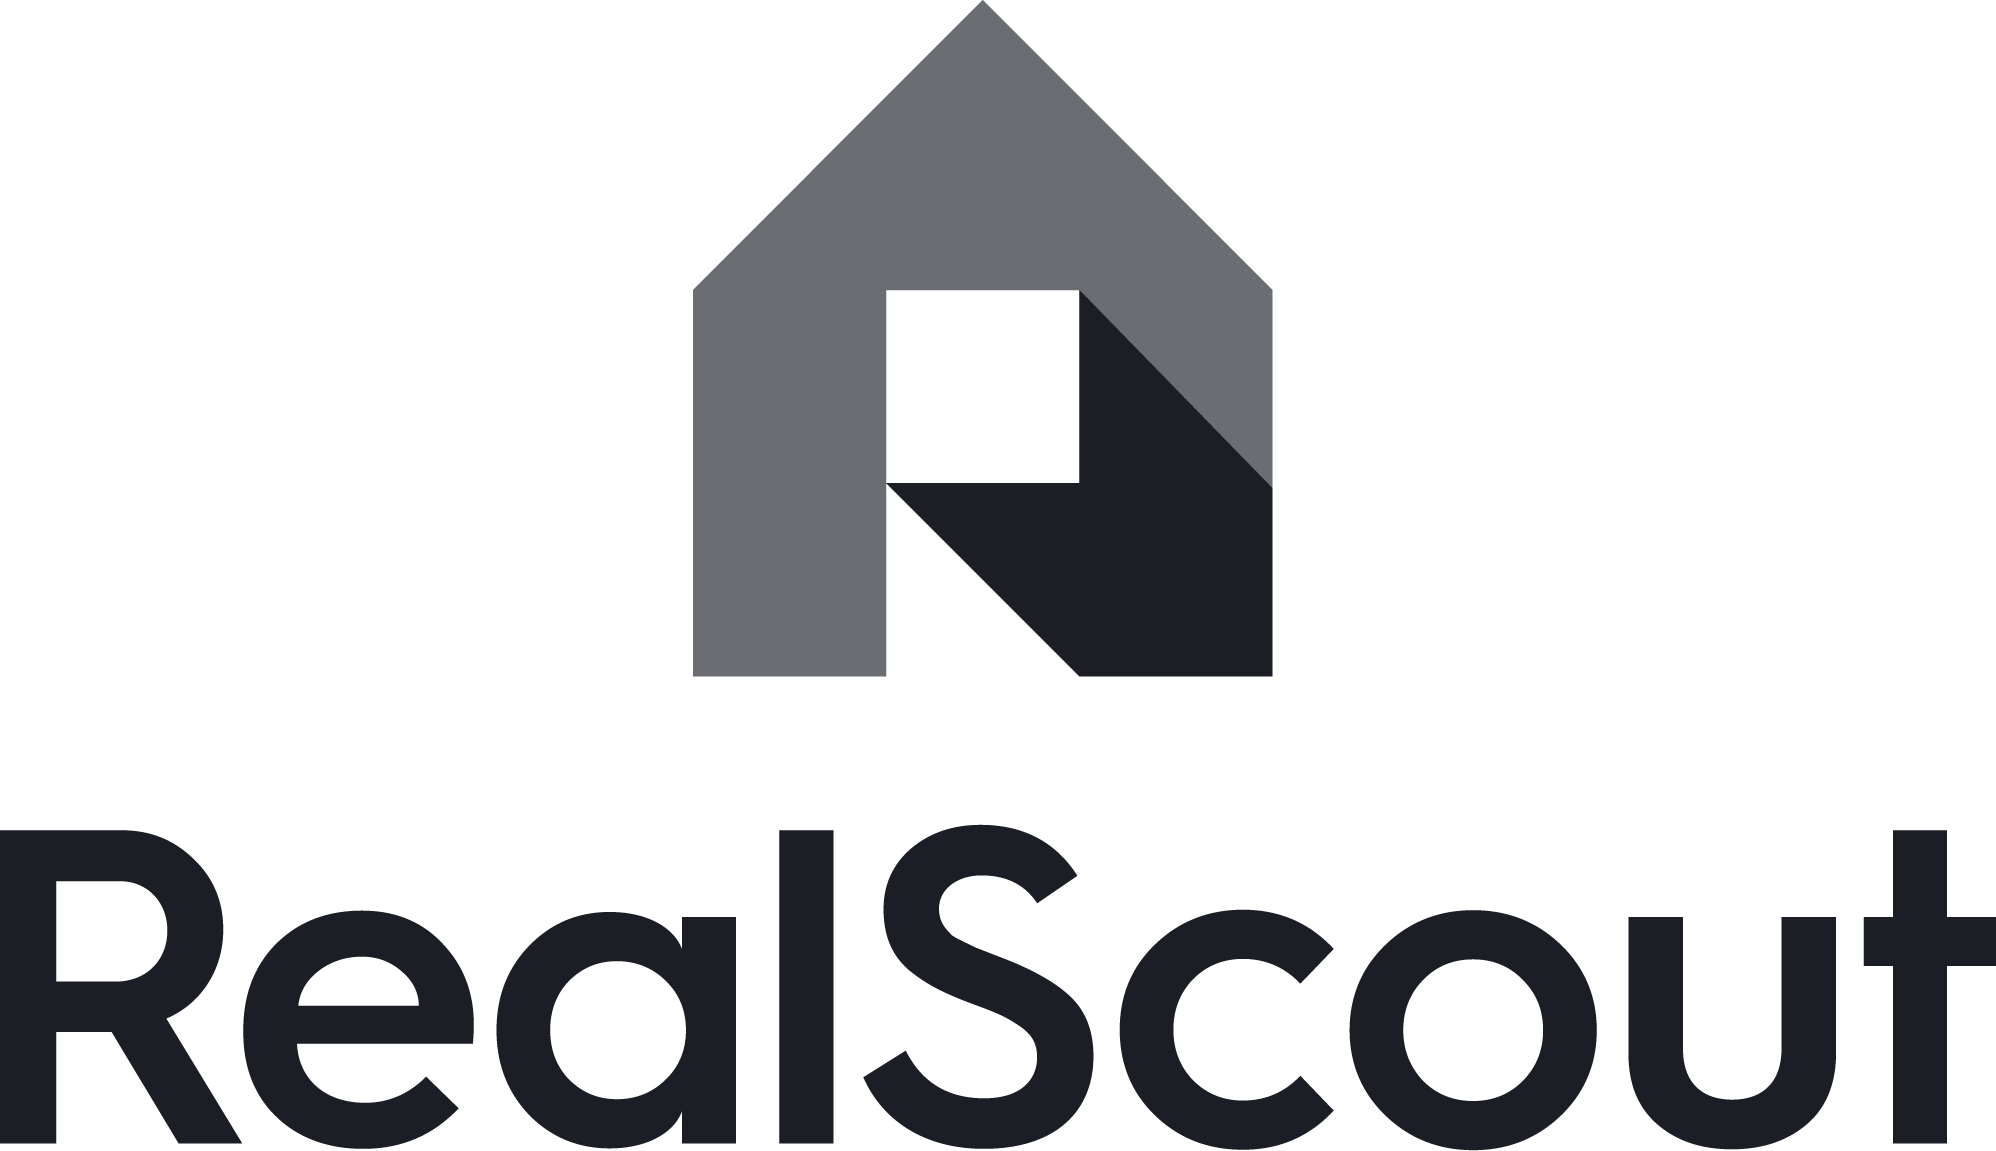 dark-square-realscout-logo-full-colour-rgb.png